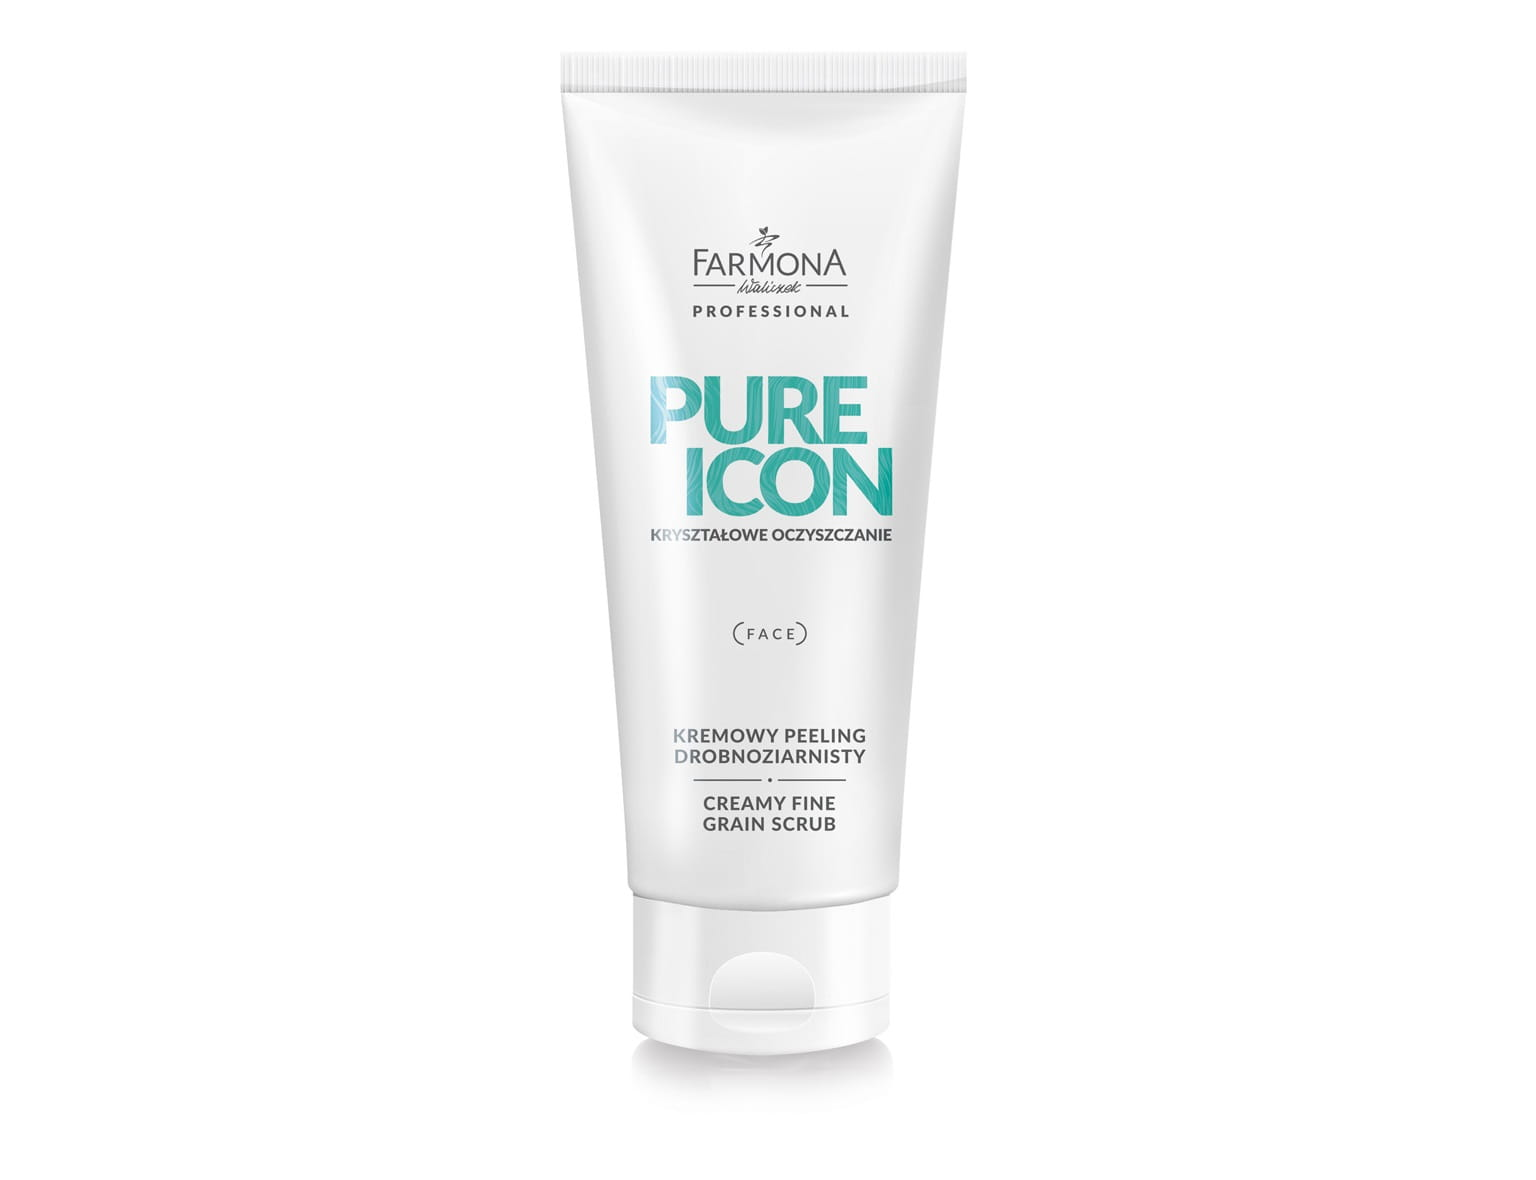 PURE ICON Kremowy peeling drobnoziarnisty, 200ml